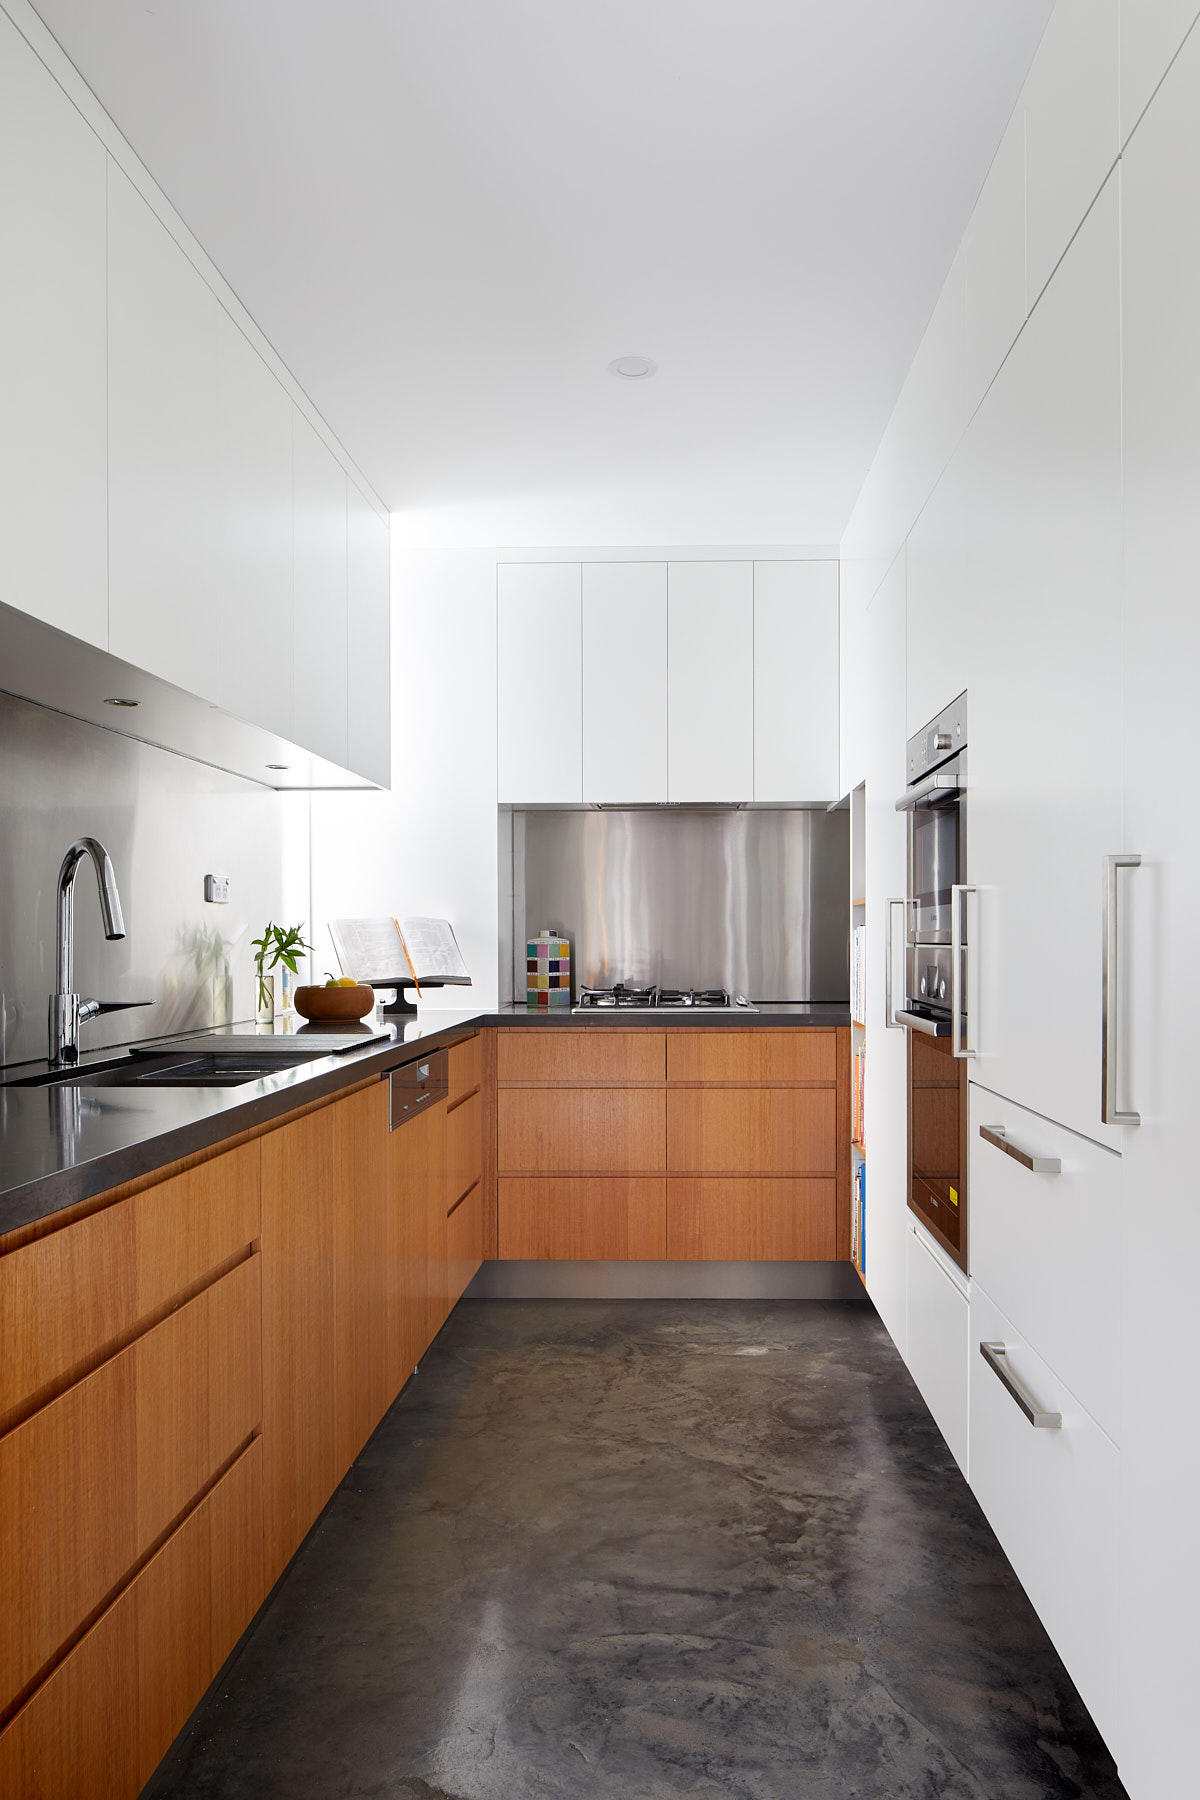 Kitchen re-design with functional cabinets